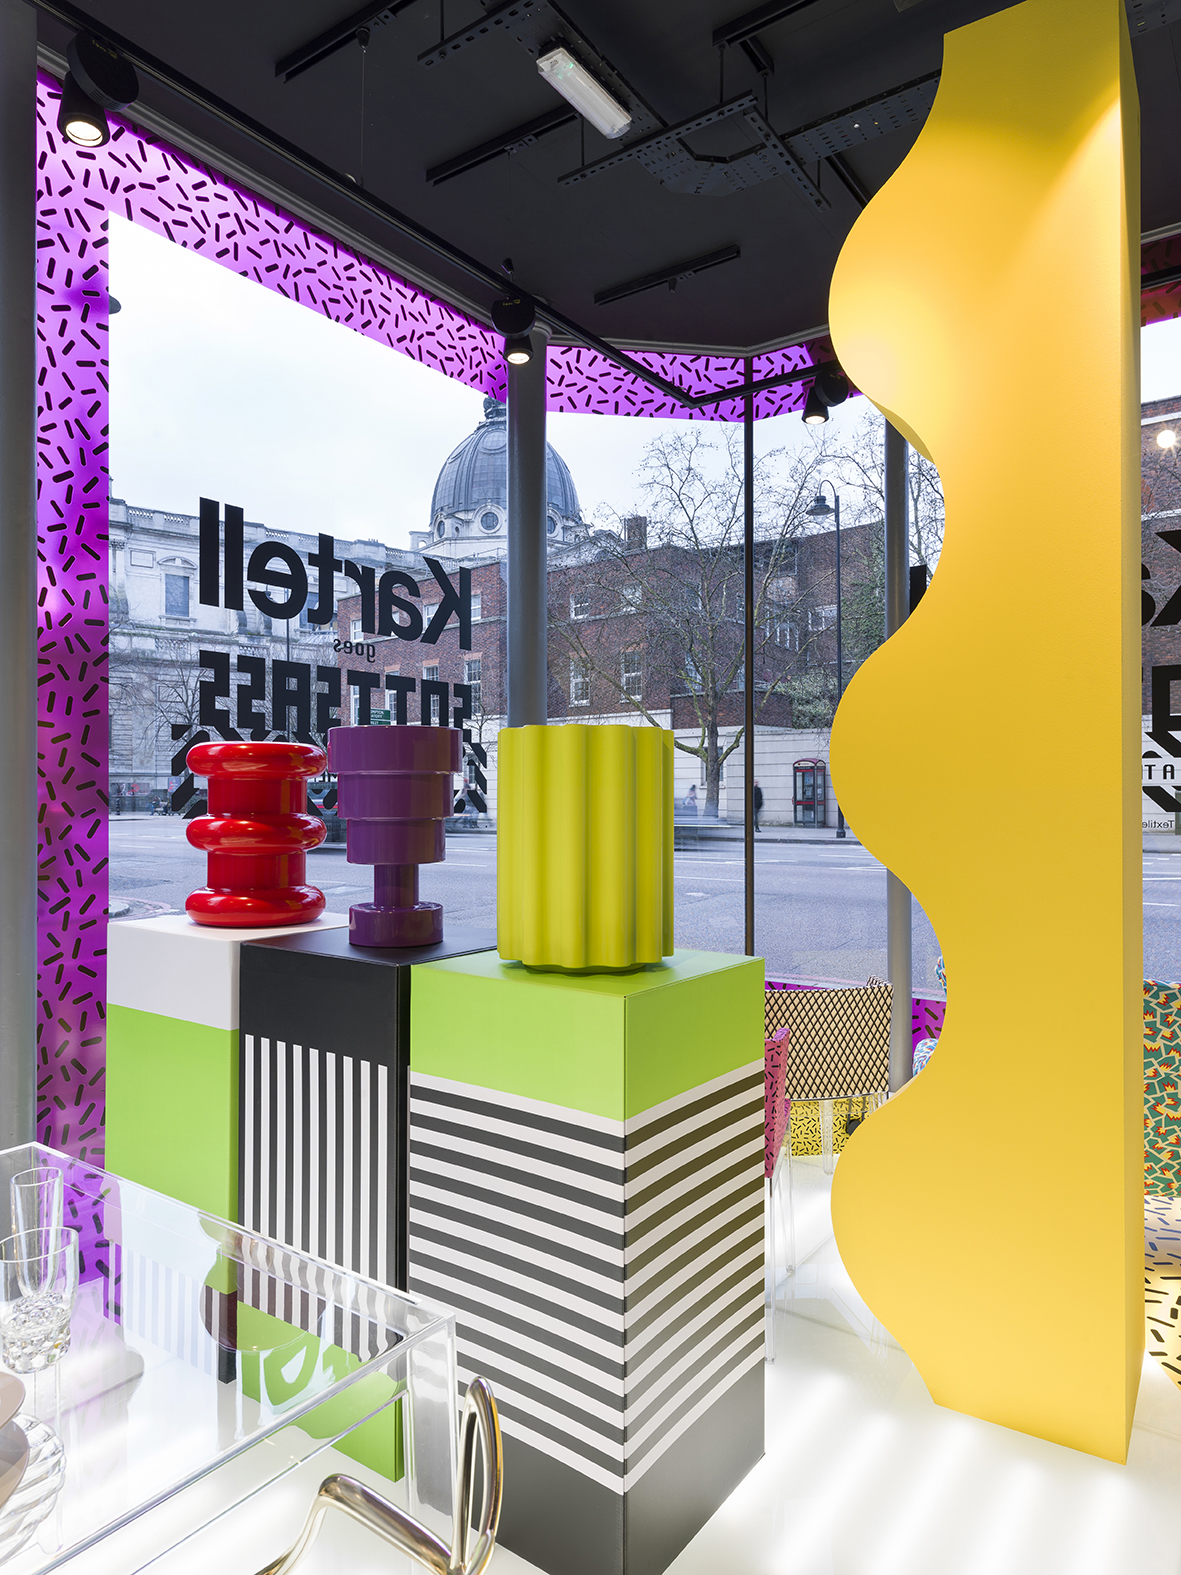 17_Kartell London Flagship Store_By Andrew Meredith.jpg